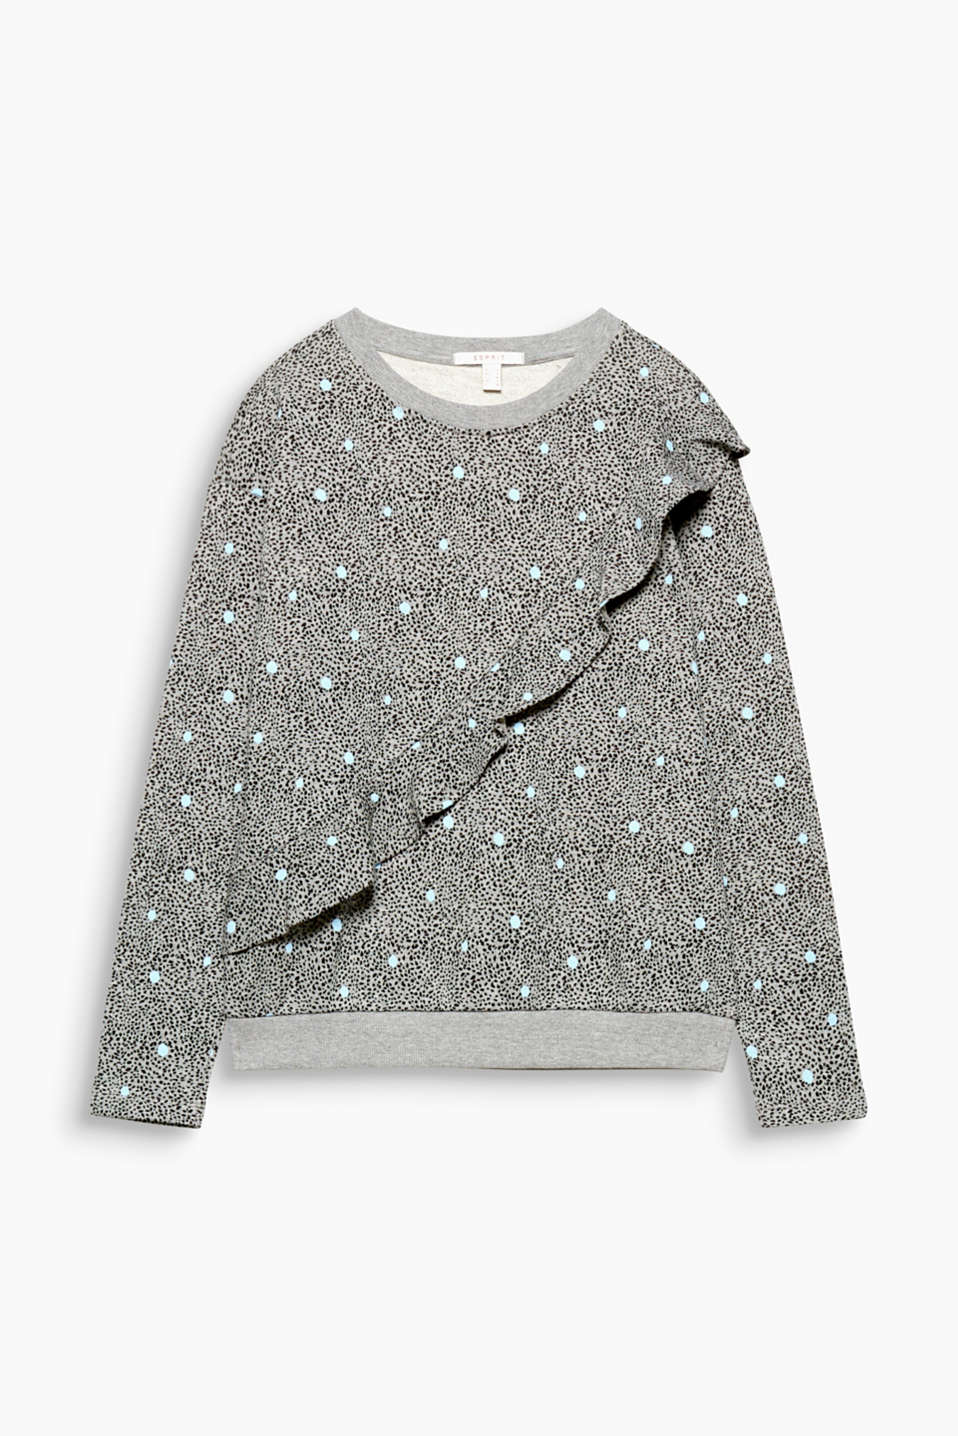 The must-have of the season: a sweatshirt in a trendy design. This one has an all-over print and flounce trim.